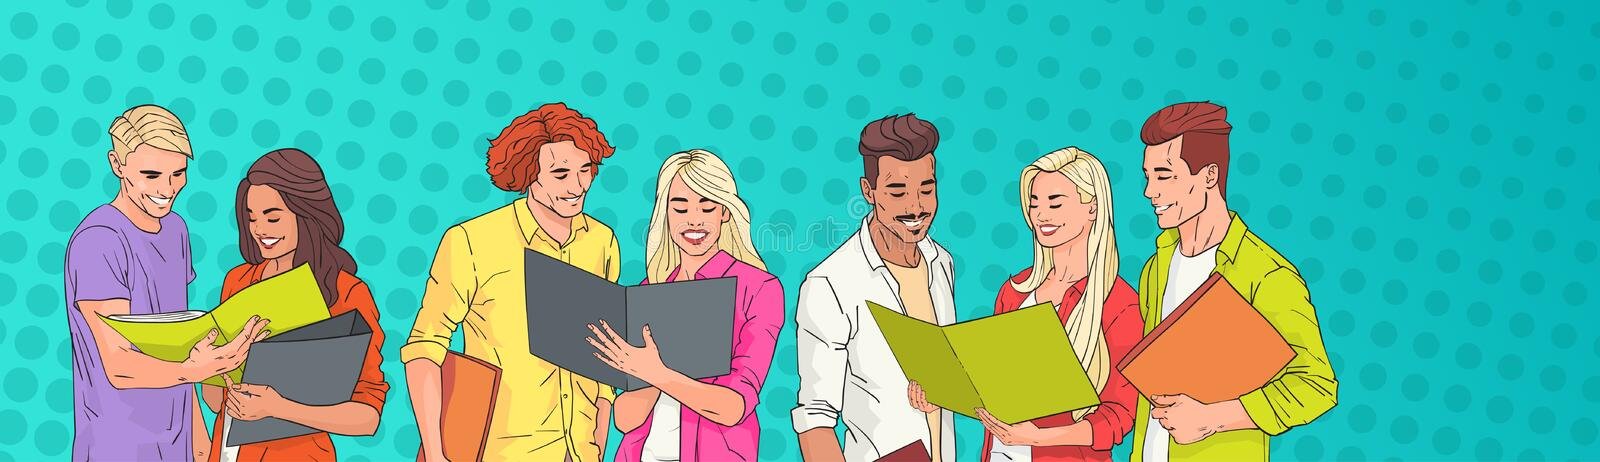 Young People Group Students Reading Over Pop Art Colorful Retro Background royalty free illustration